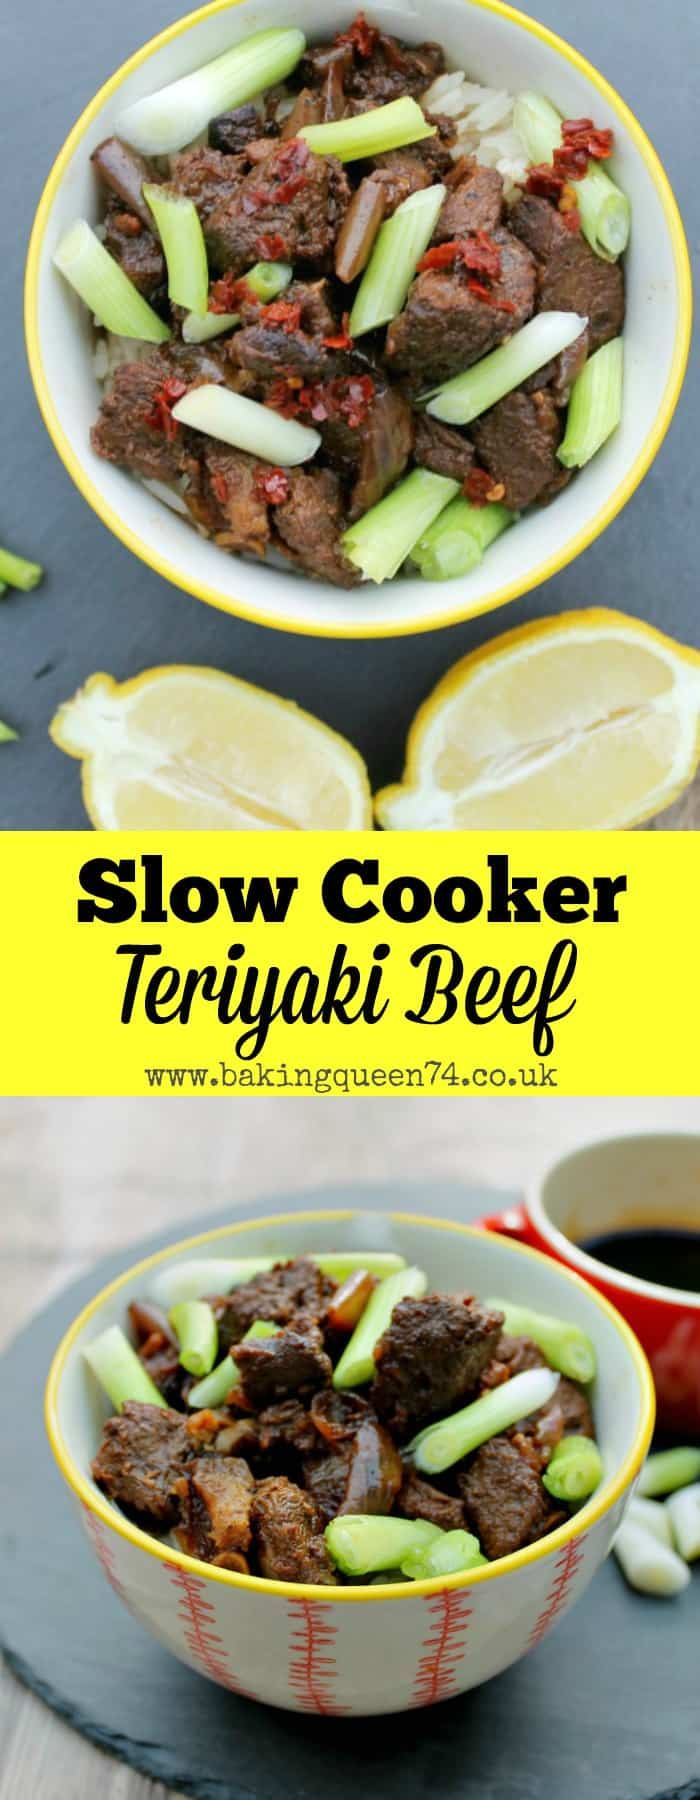 how to cook beef teriyaki